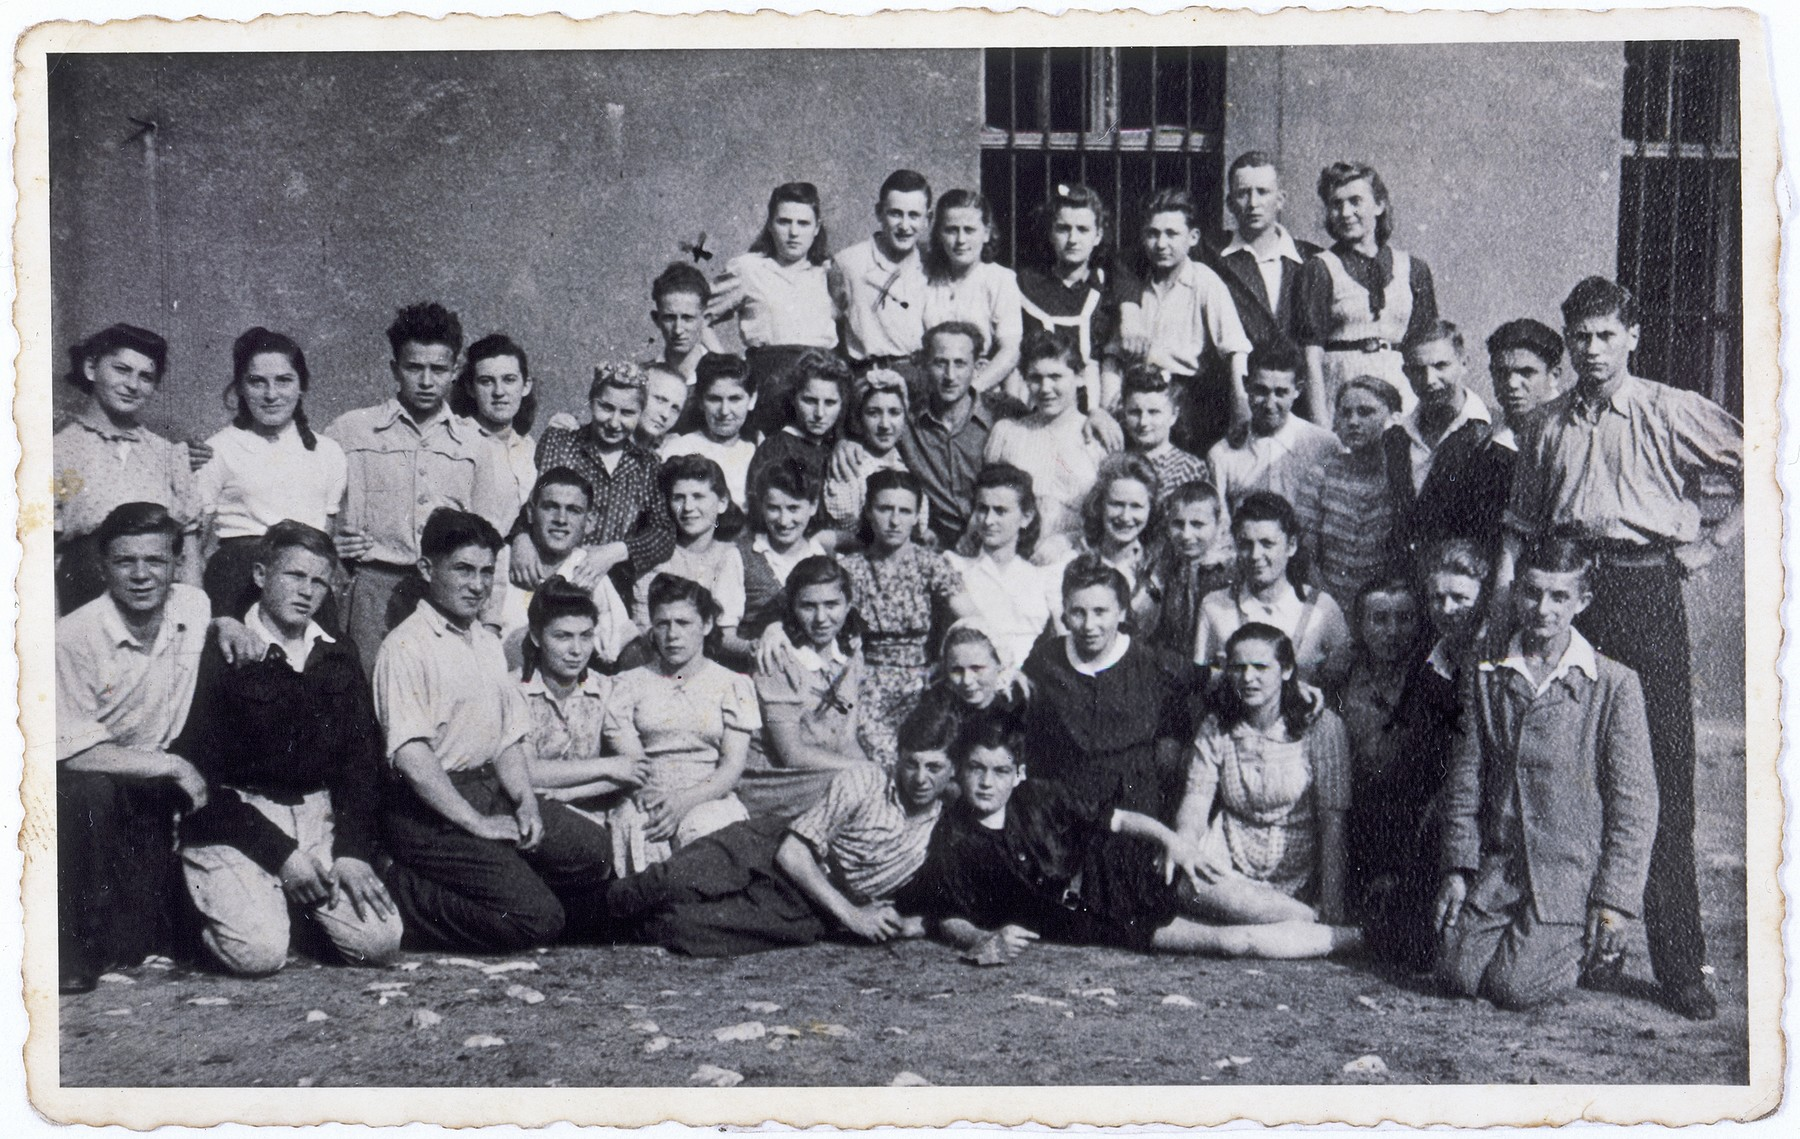 Group portrait of the members of a Shomer Hatzair kibbutz hachshara (Zionist collective) in Sosnowiec, Poland.  Among those pictured is Hela Kolin, top row, third from the left.